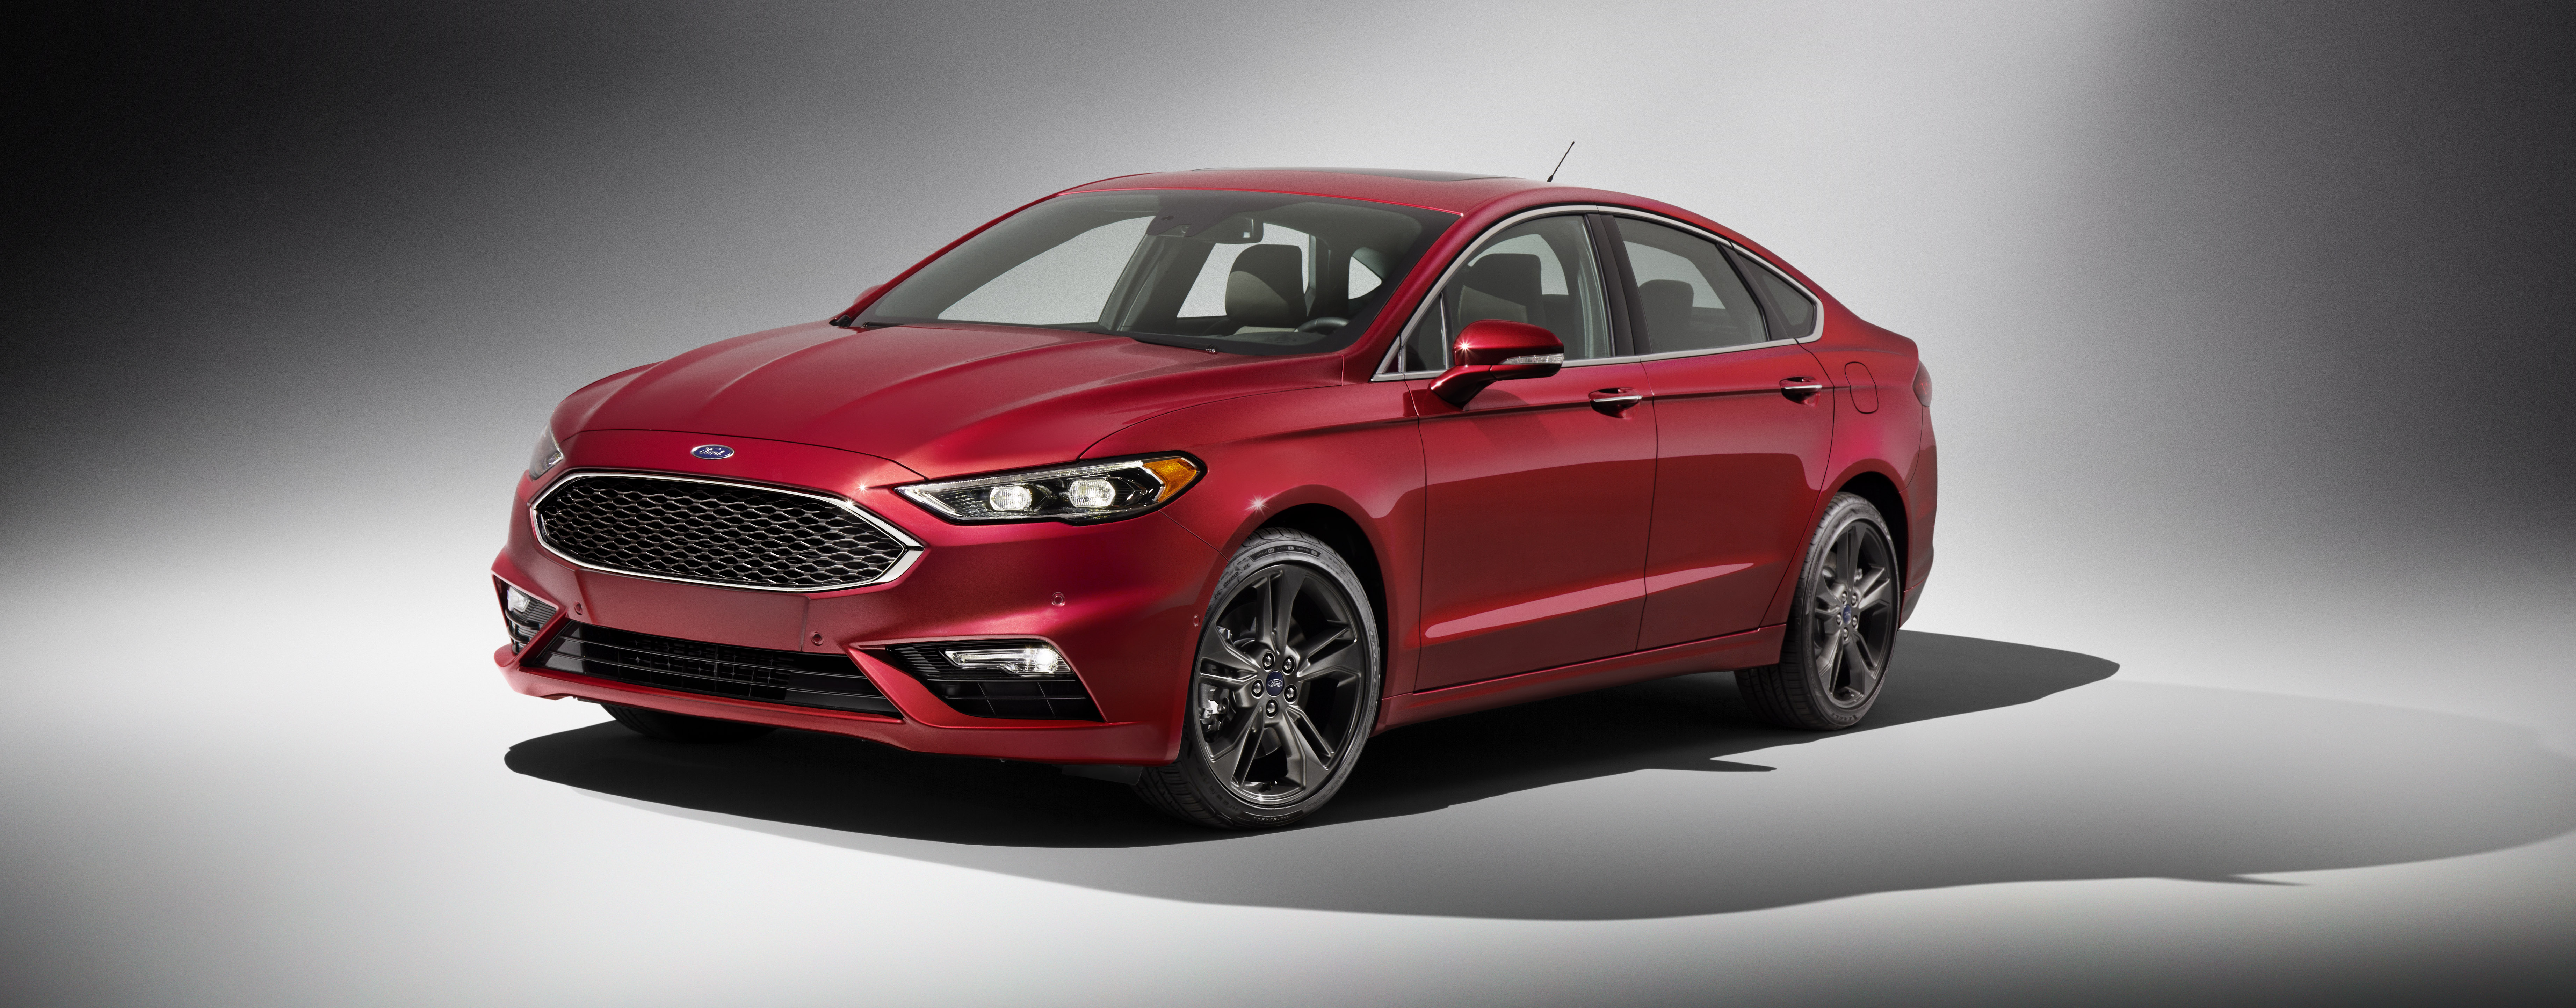 2017 ford fusion is the domestic mid size ass hauler. Black Bedroom Furniture Sets. Home Design Ideas